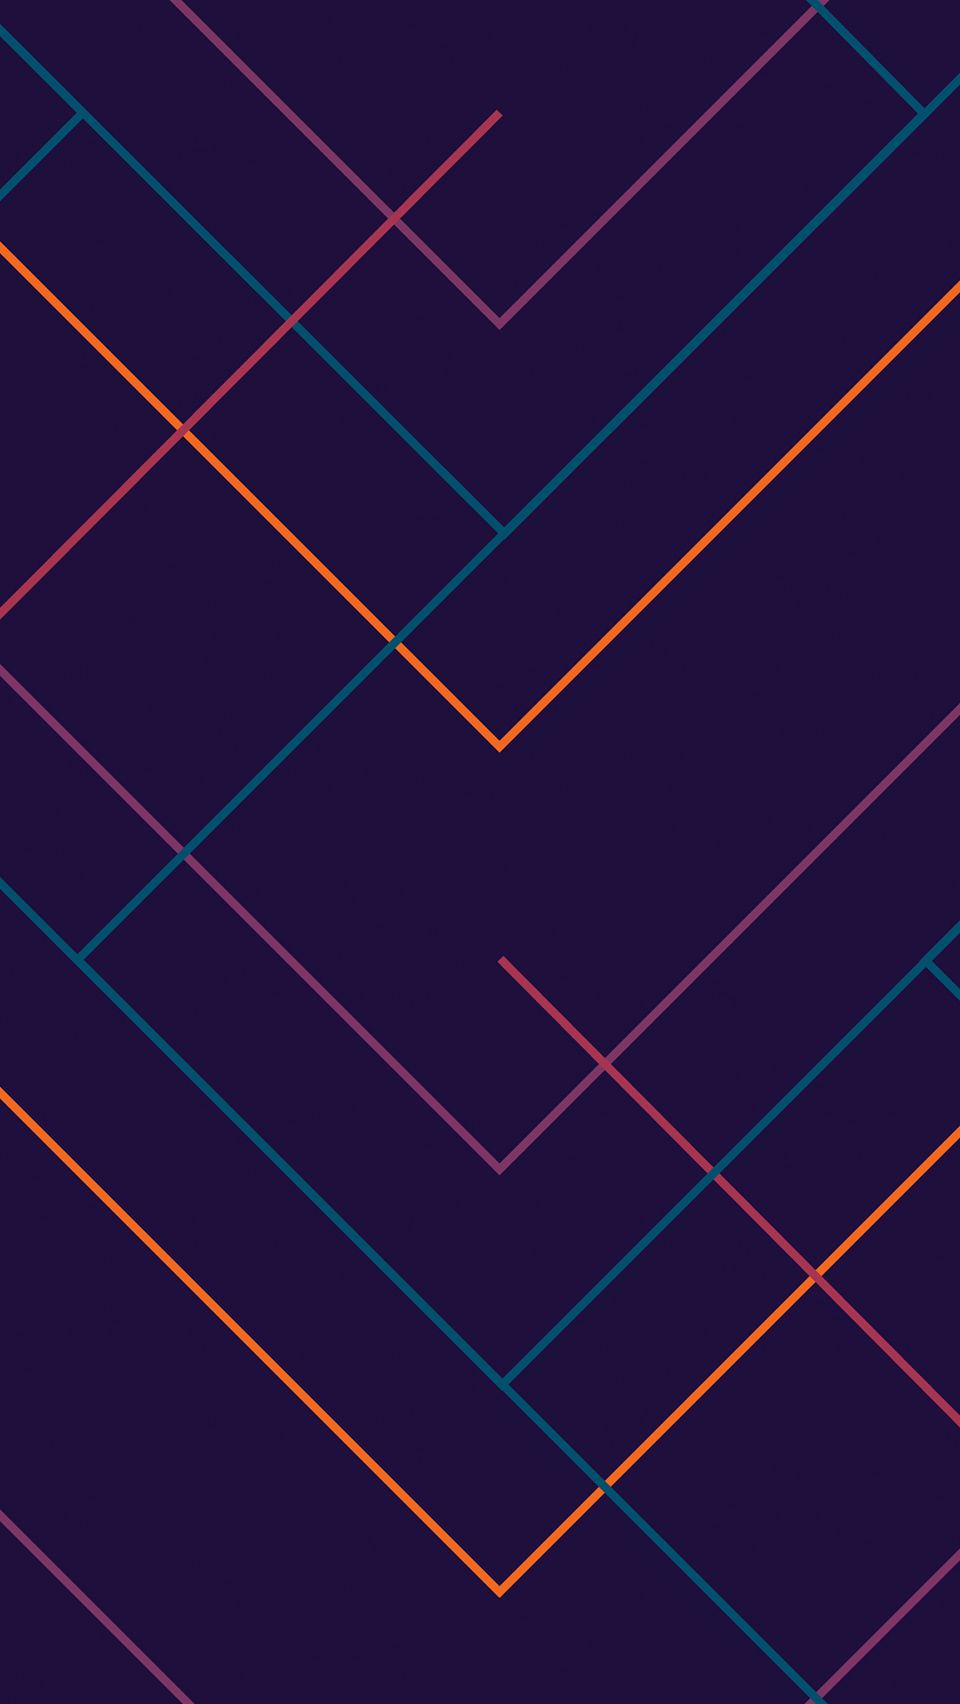 Wallpaper Of The Week By Percolate Simple Phone Wallpapers Simple Wallpapers Android Wallpaper